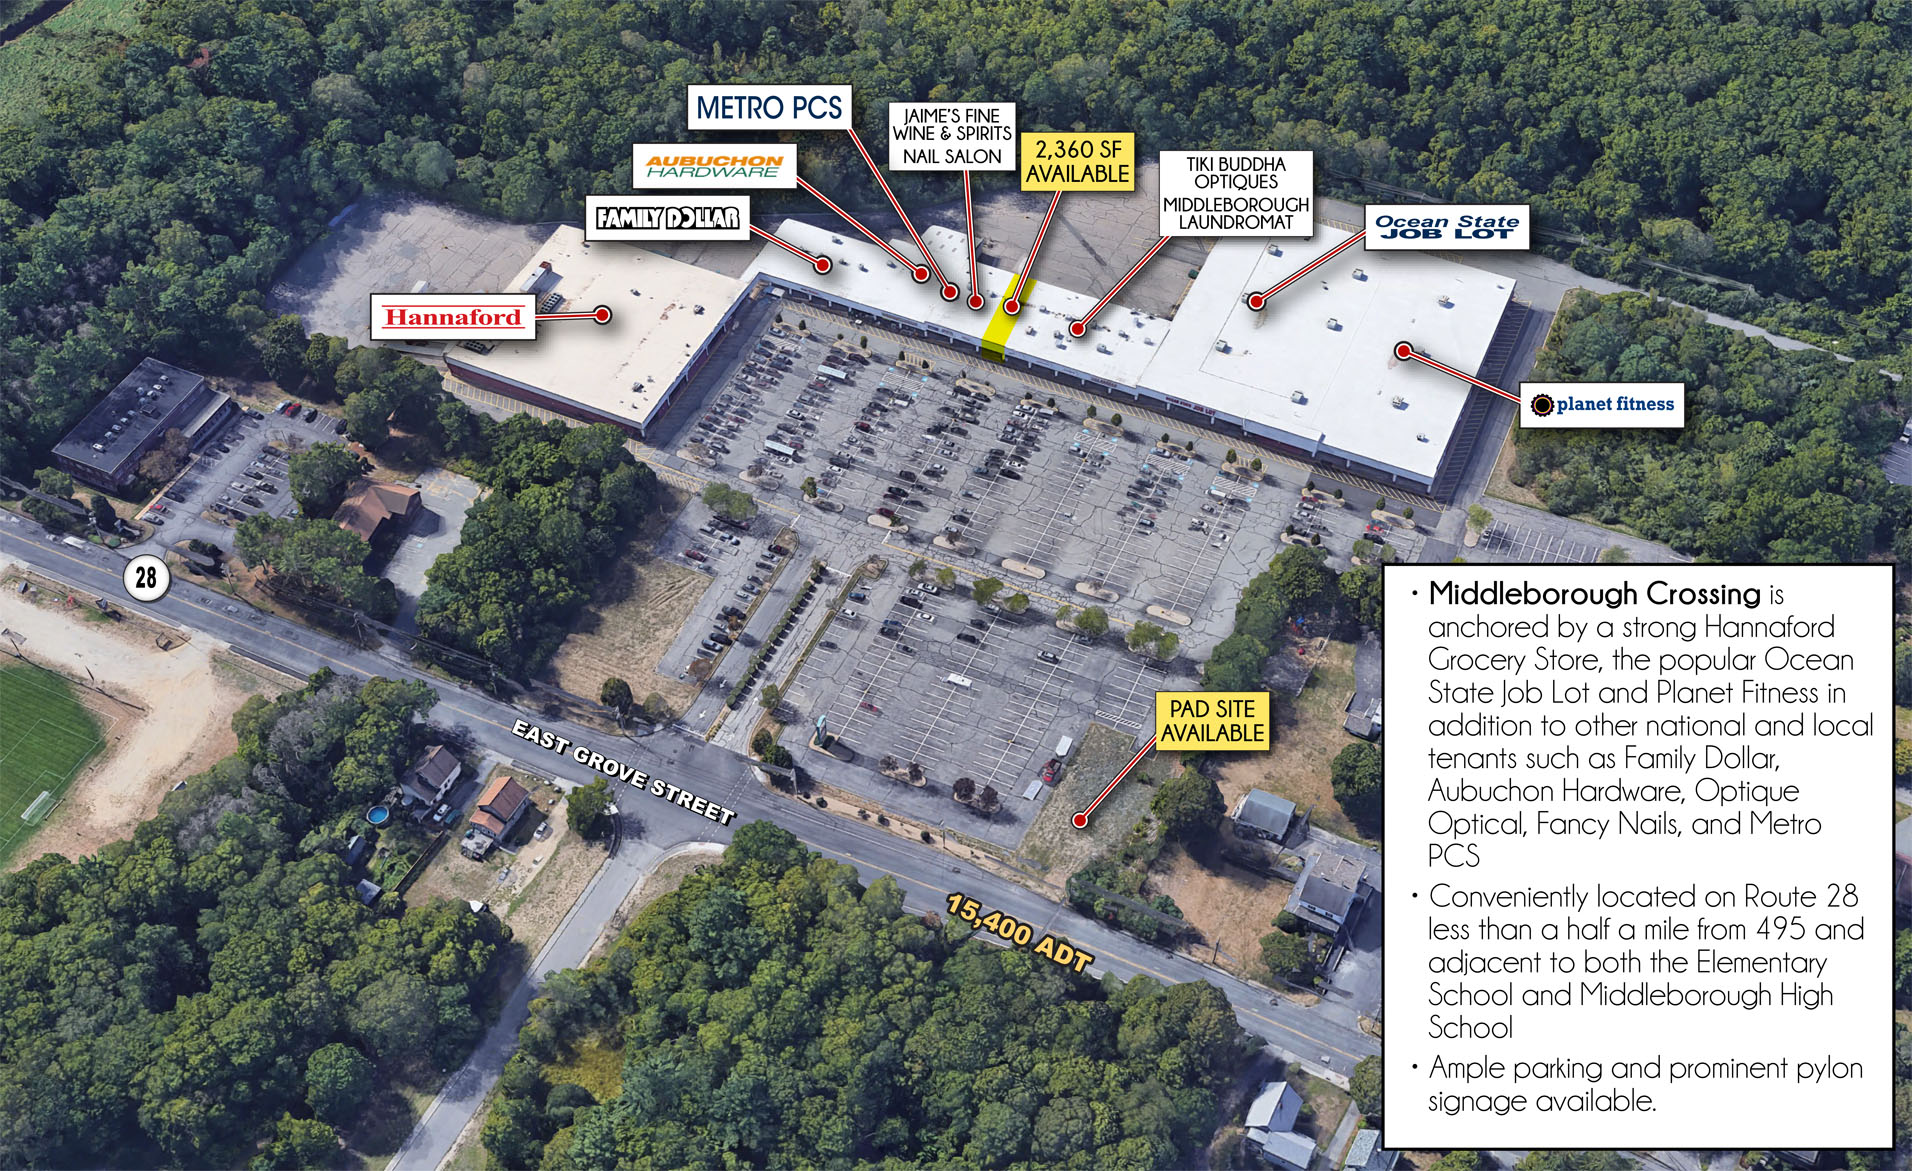 Location: Middleborough, Massachusetts Size: +/-2,360 SF Plus Pad Site Available at Entrance